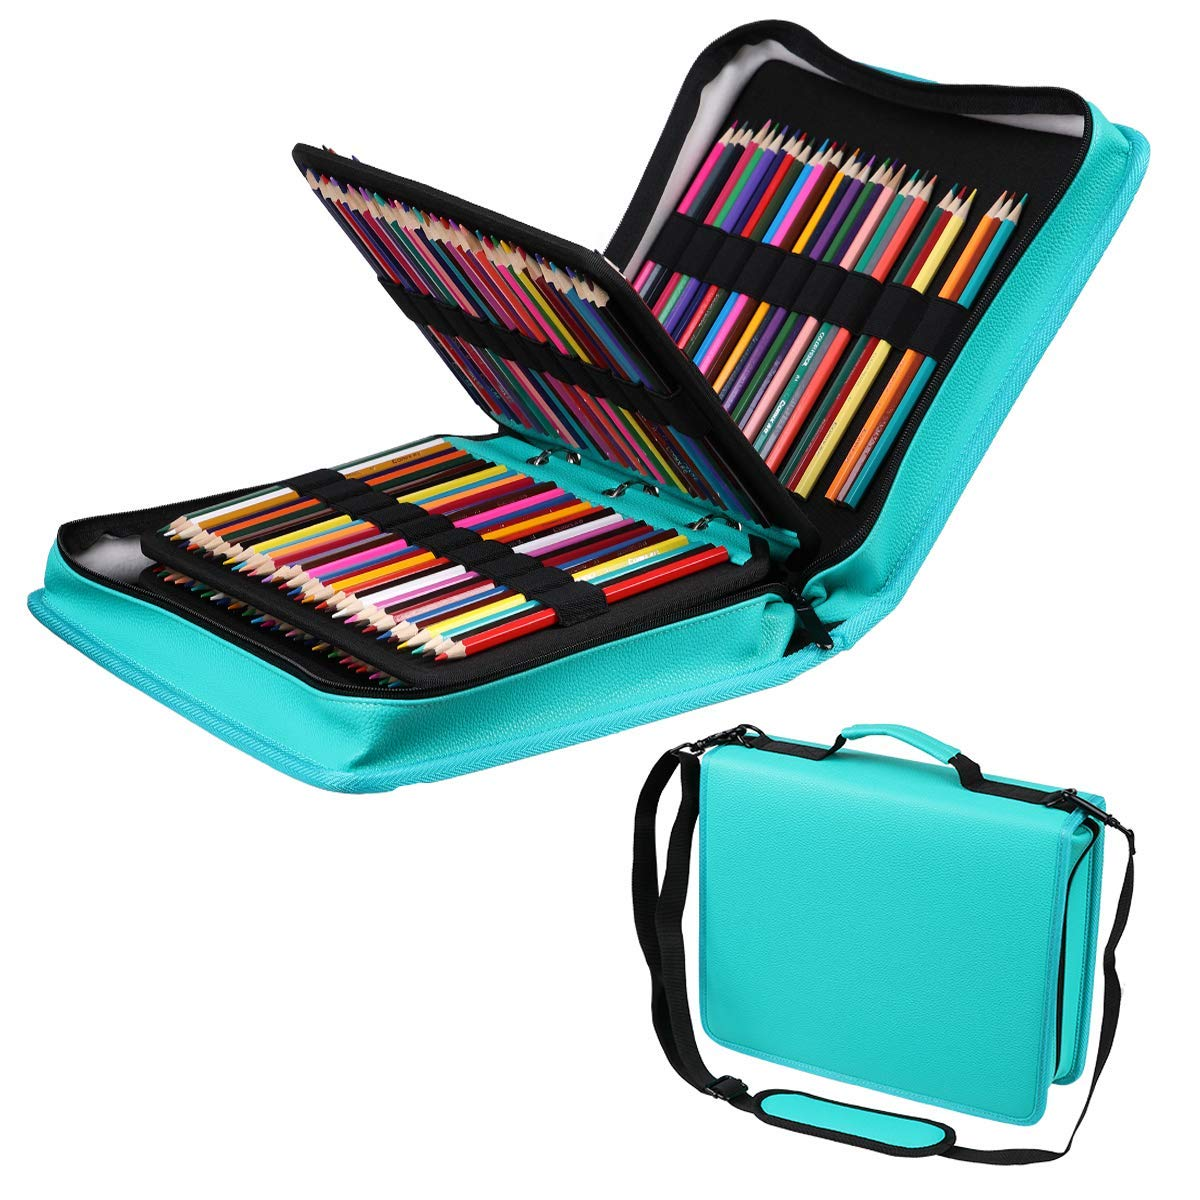 210 Slots Colored Pencils Pencil Case PU Leather Pencil Holder Sleeve Pen Bag with Adjustable Removable Strap Snap Hook for Watercolor Pencils, Colored Pencils, Gel Pens, Cosmetic Brush,Eraser (Green